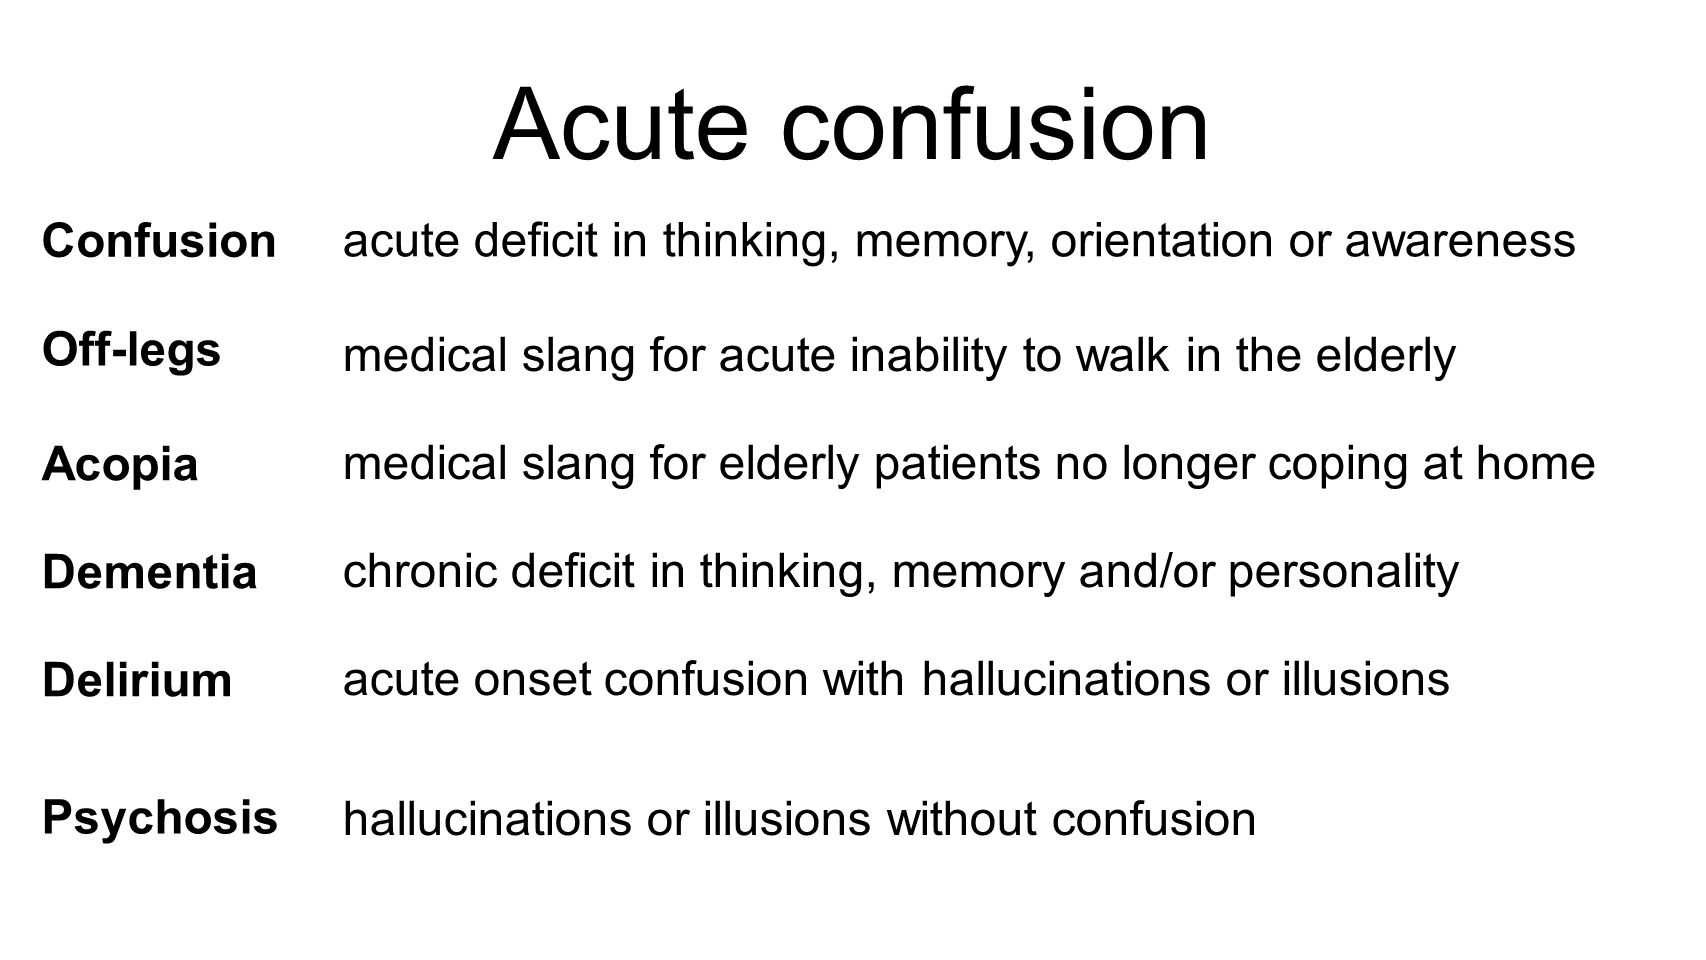 Acute confusion Confusion Off-legs Acopia Dementia Delirium Psychosis acute deficit in thinking, memory, orientation or awareness medical slang for acute inability to walk in the elderly medical slang for elderly patients no longer coping at home chronic deficit in thinking, memory and/or personality acute onset confusion with hallucinations or illusions hallucinations or illusions without confusion